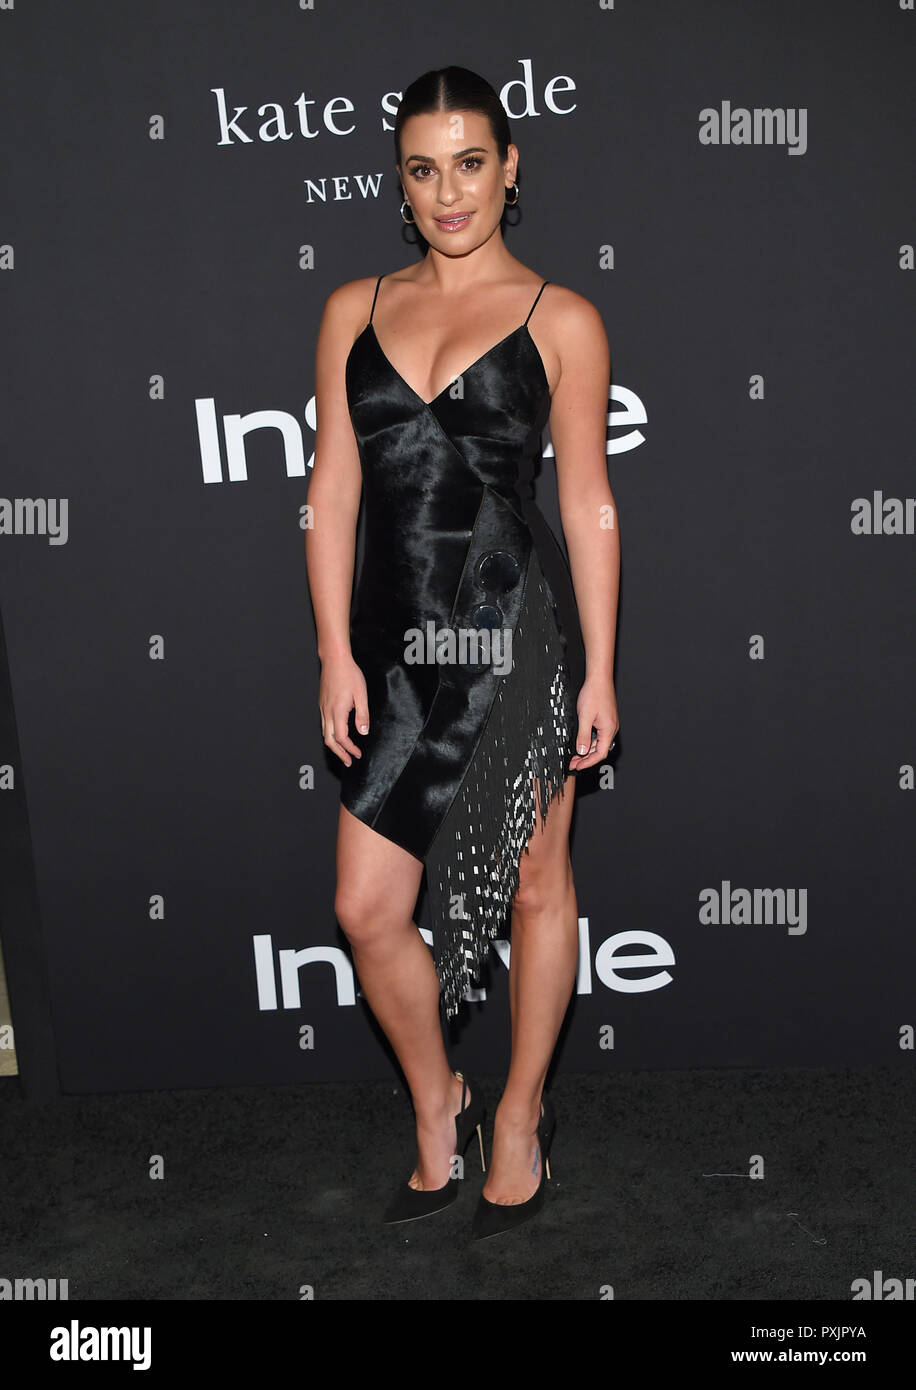 3dcecefae7 Lea Michele arrives for the 4th Annual 'InStyle Awards' at The Getty  Center. Credit: Lisa O'Connor/ZUMA Wire/Alamy Live News